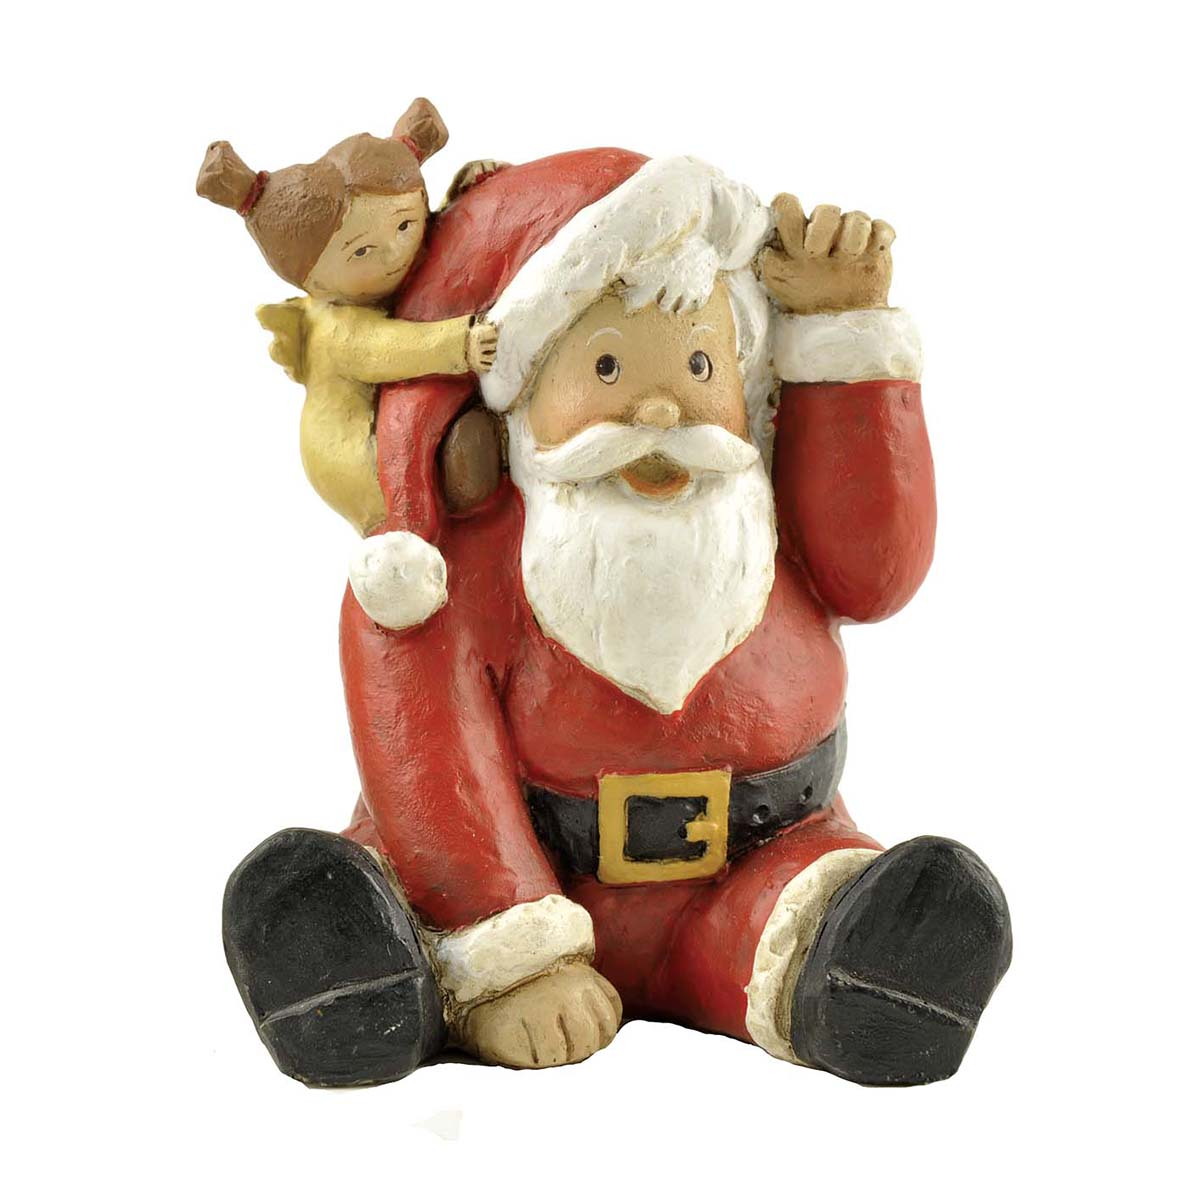 Ennas christmas figurine family at sale-1